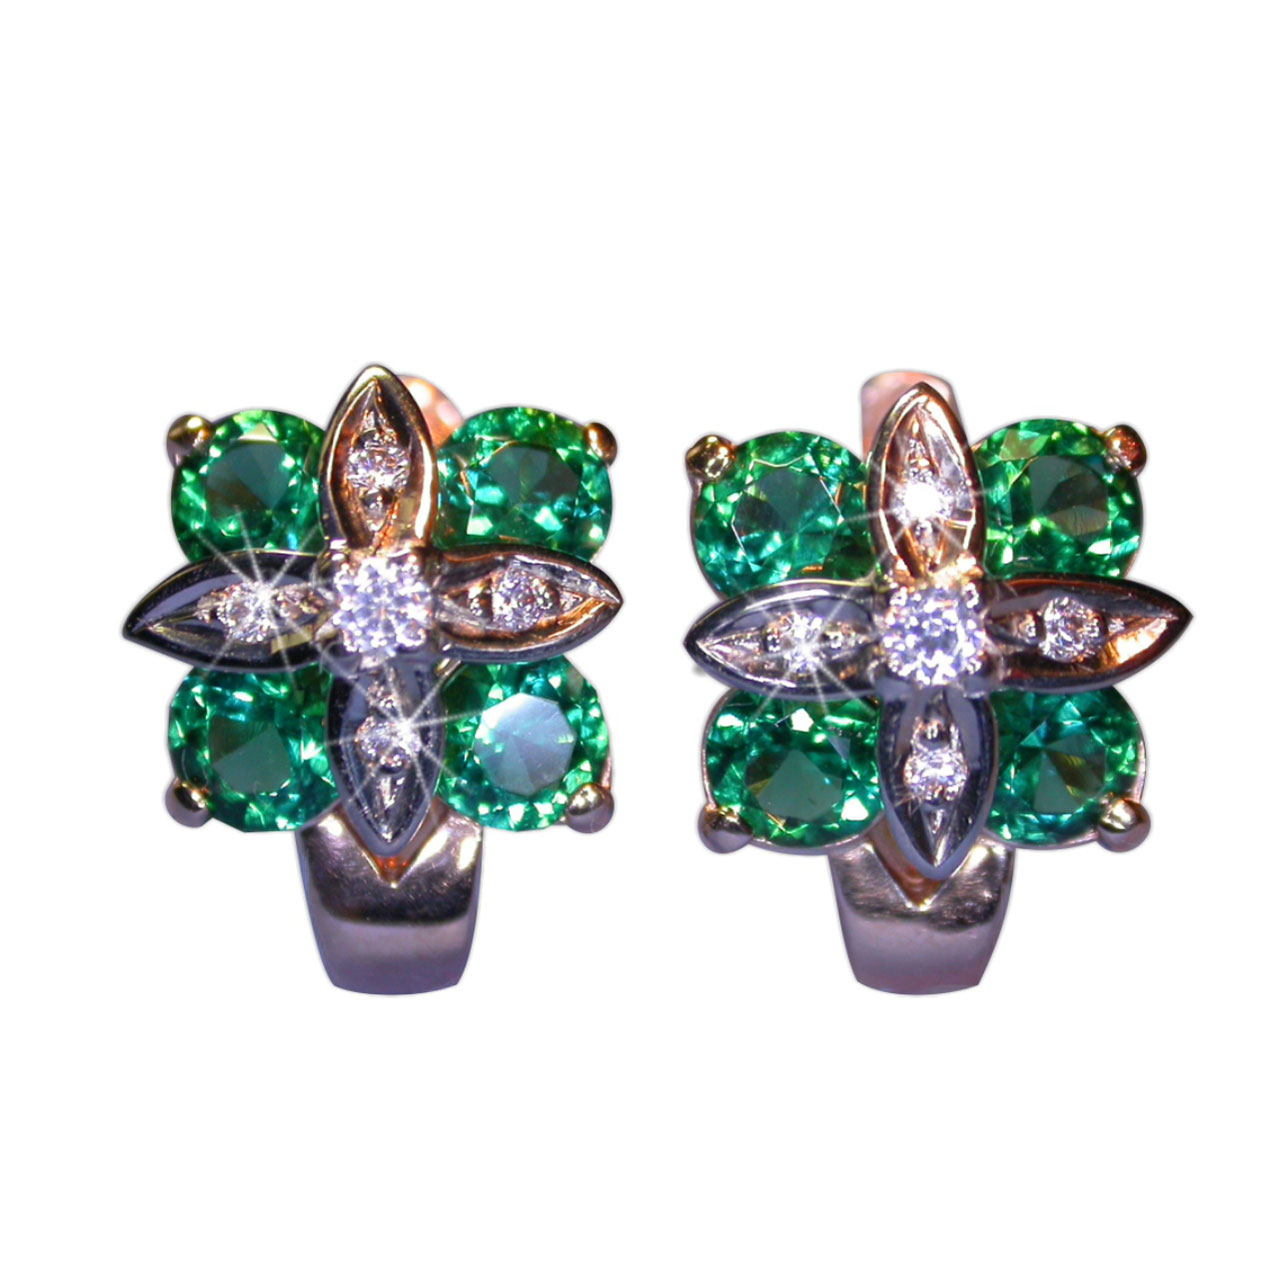 Emerald Earrings With Leverback Lock